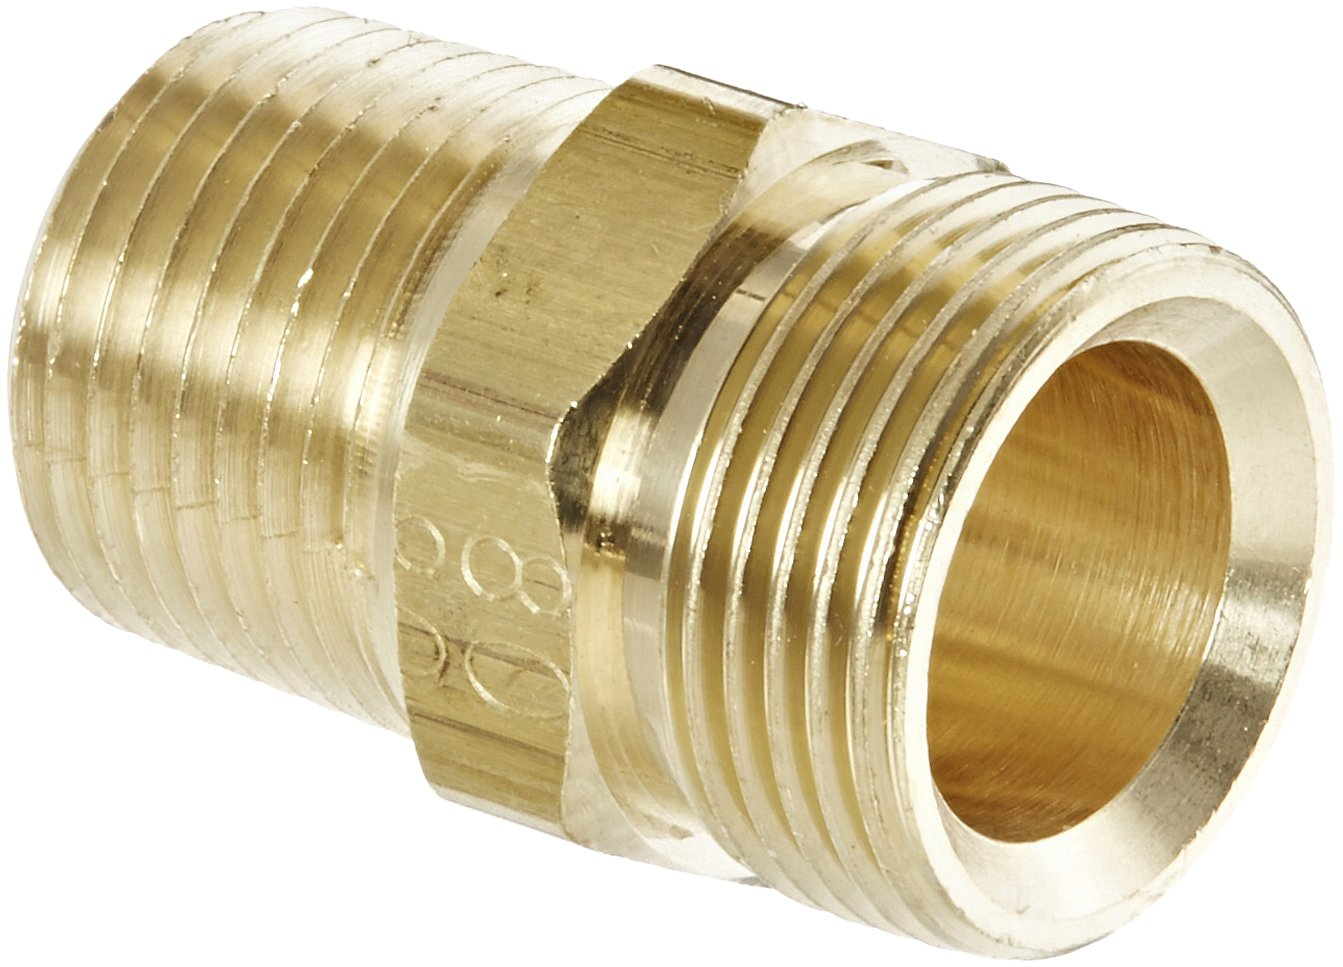 1//4 Parker 639PLP-4-pk5 Composite Push-to-Connect Fitting Tube to Plug-in Stem Pack of 5 1//4 Pack of 5